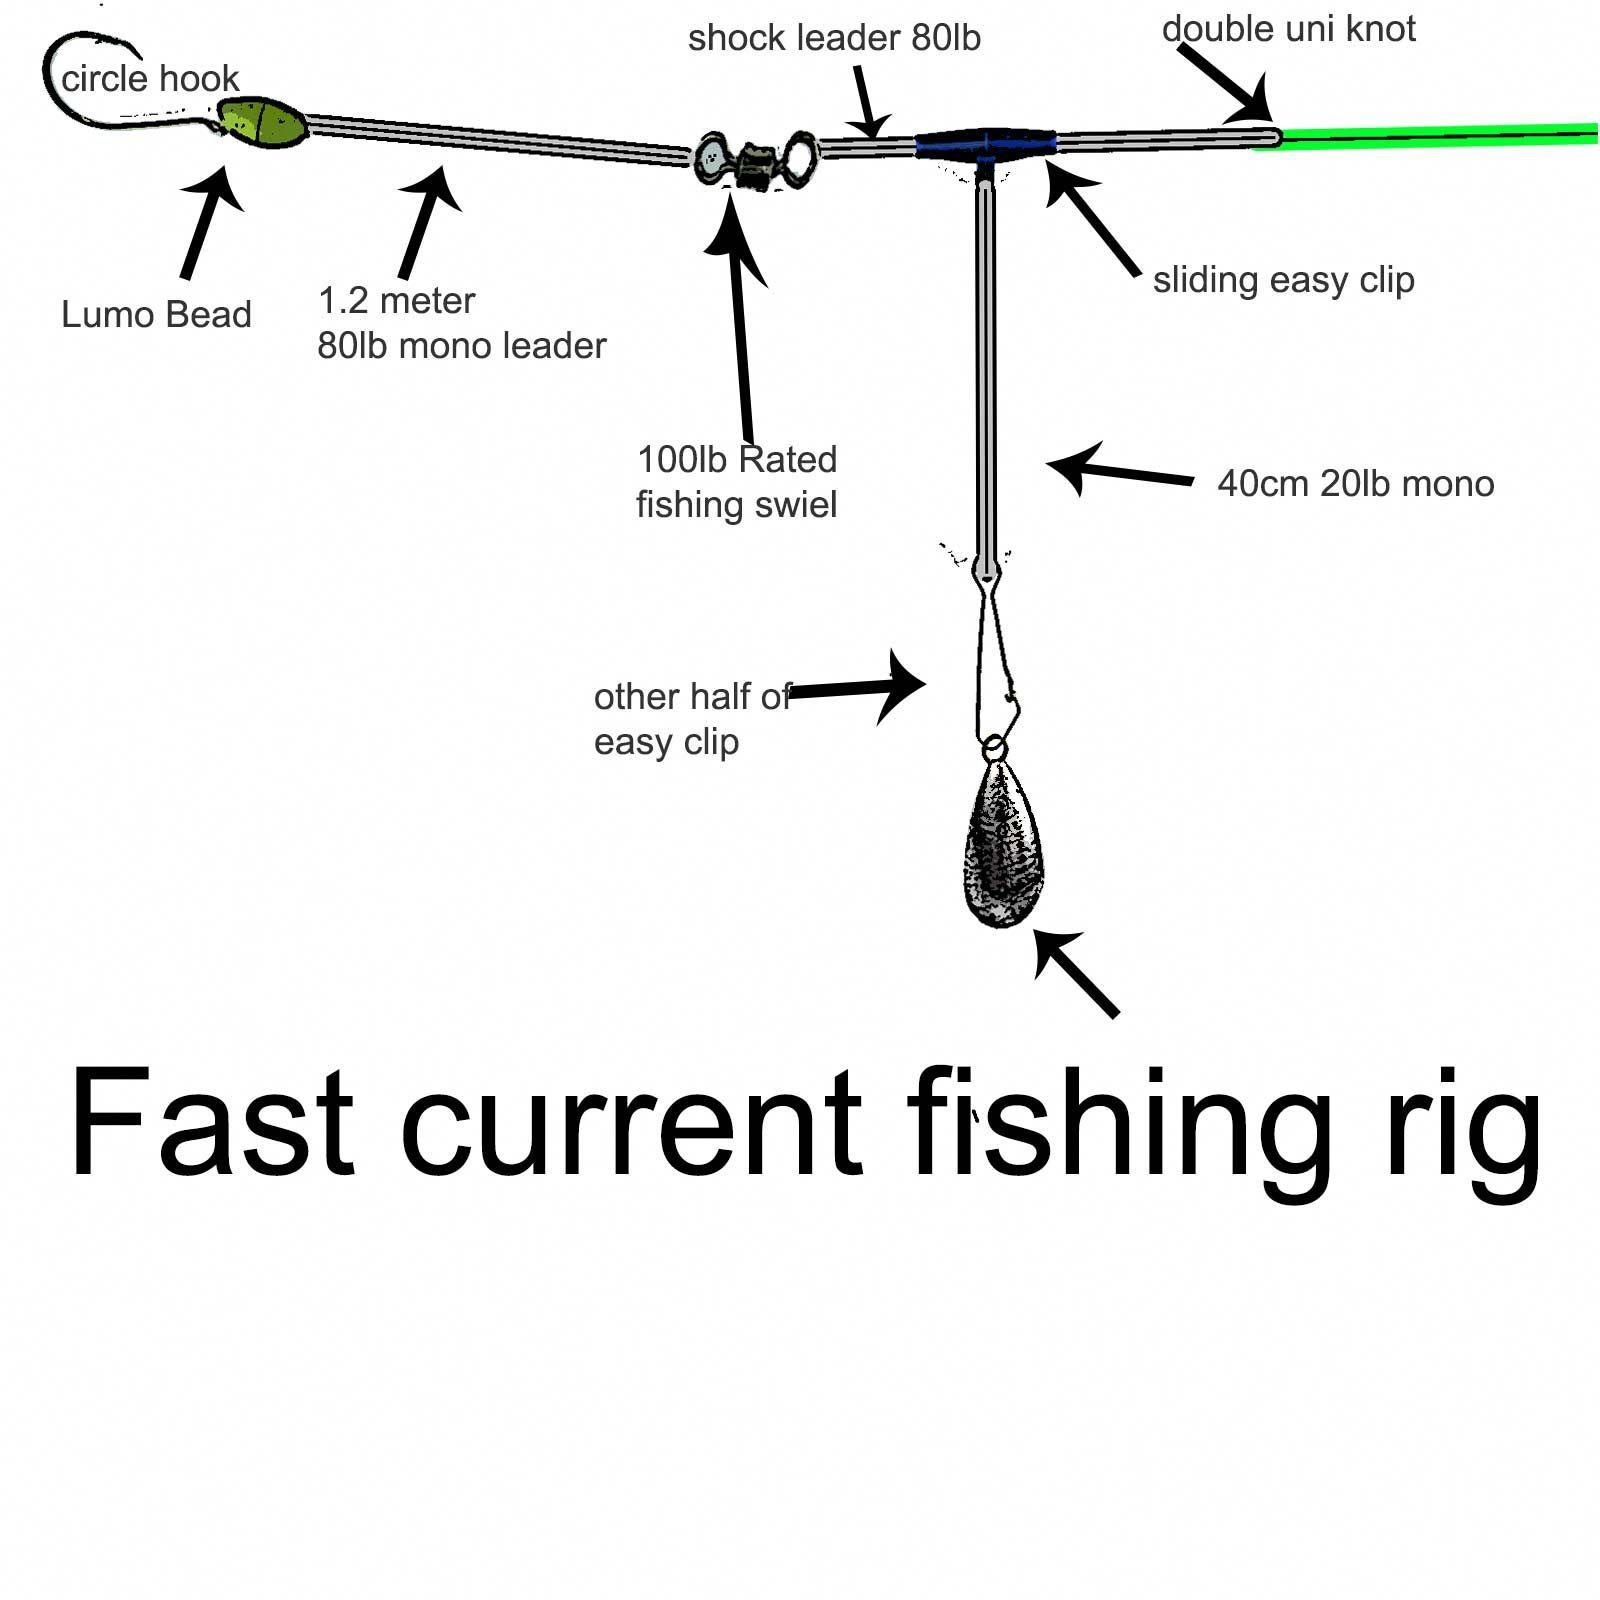 small resolution of shark rig diagram wiring library diagram a2 daytime swordfish rig diagram fast current fishing rig diagram